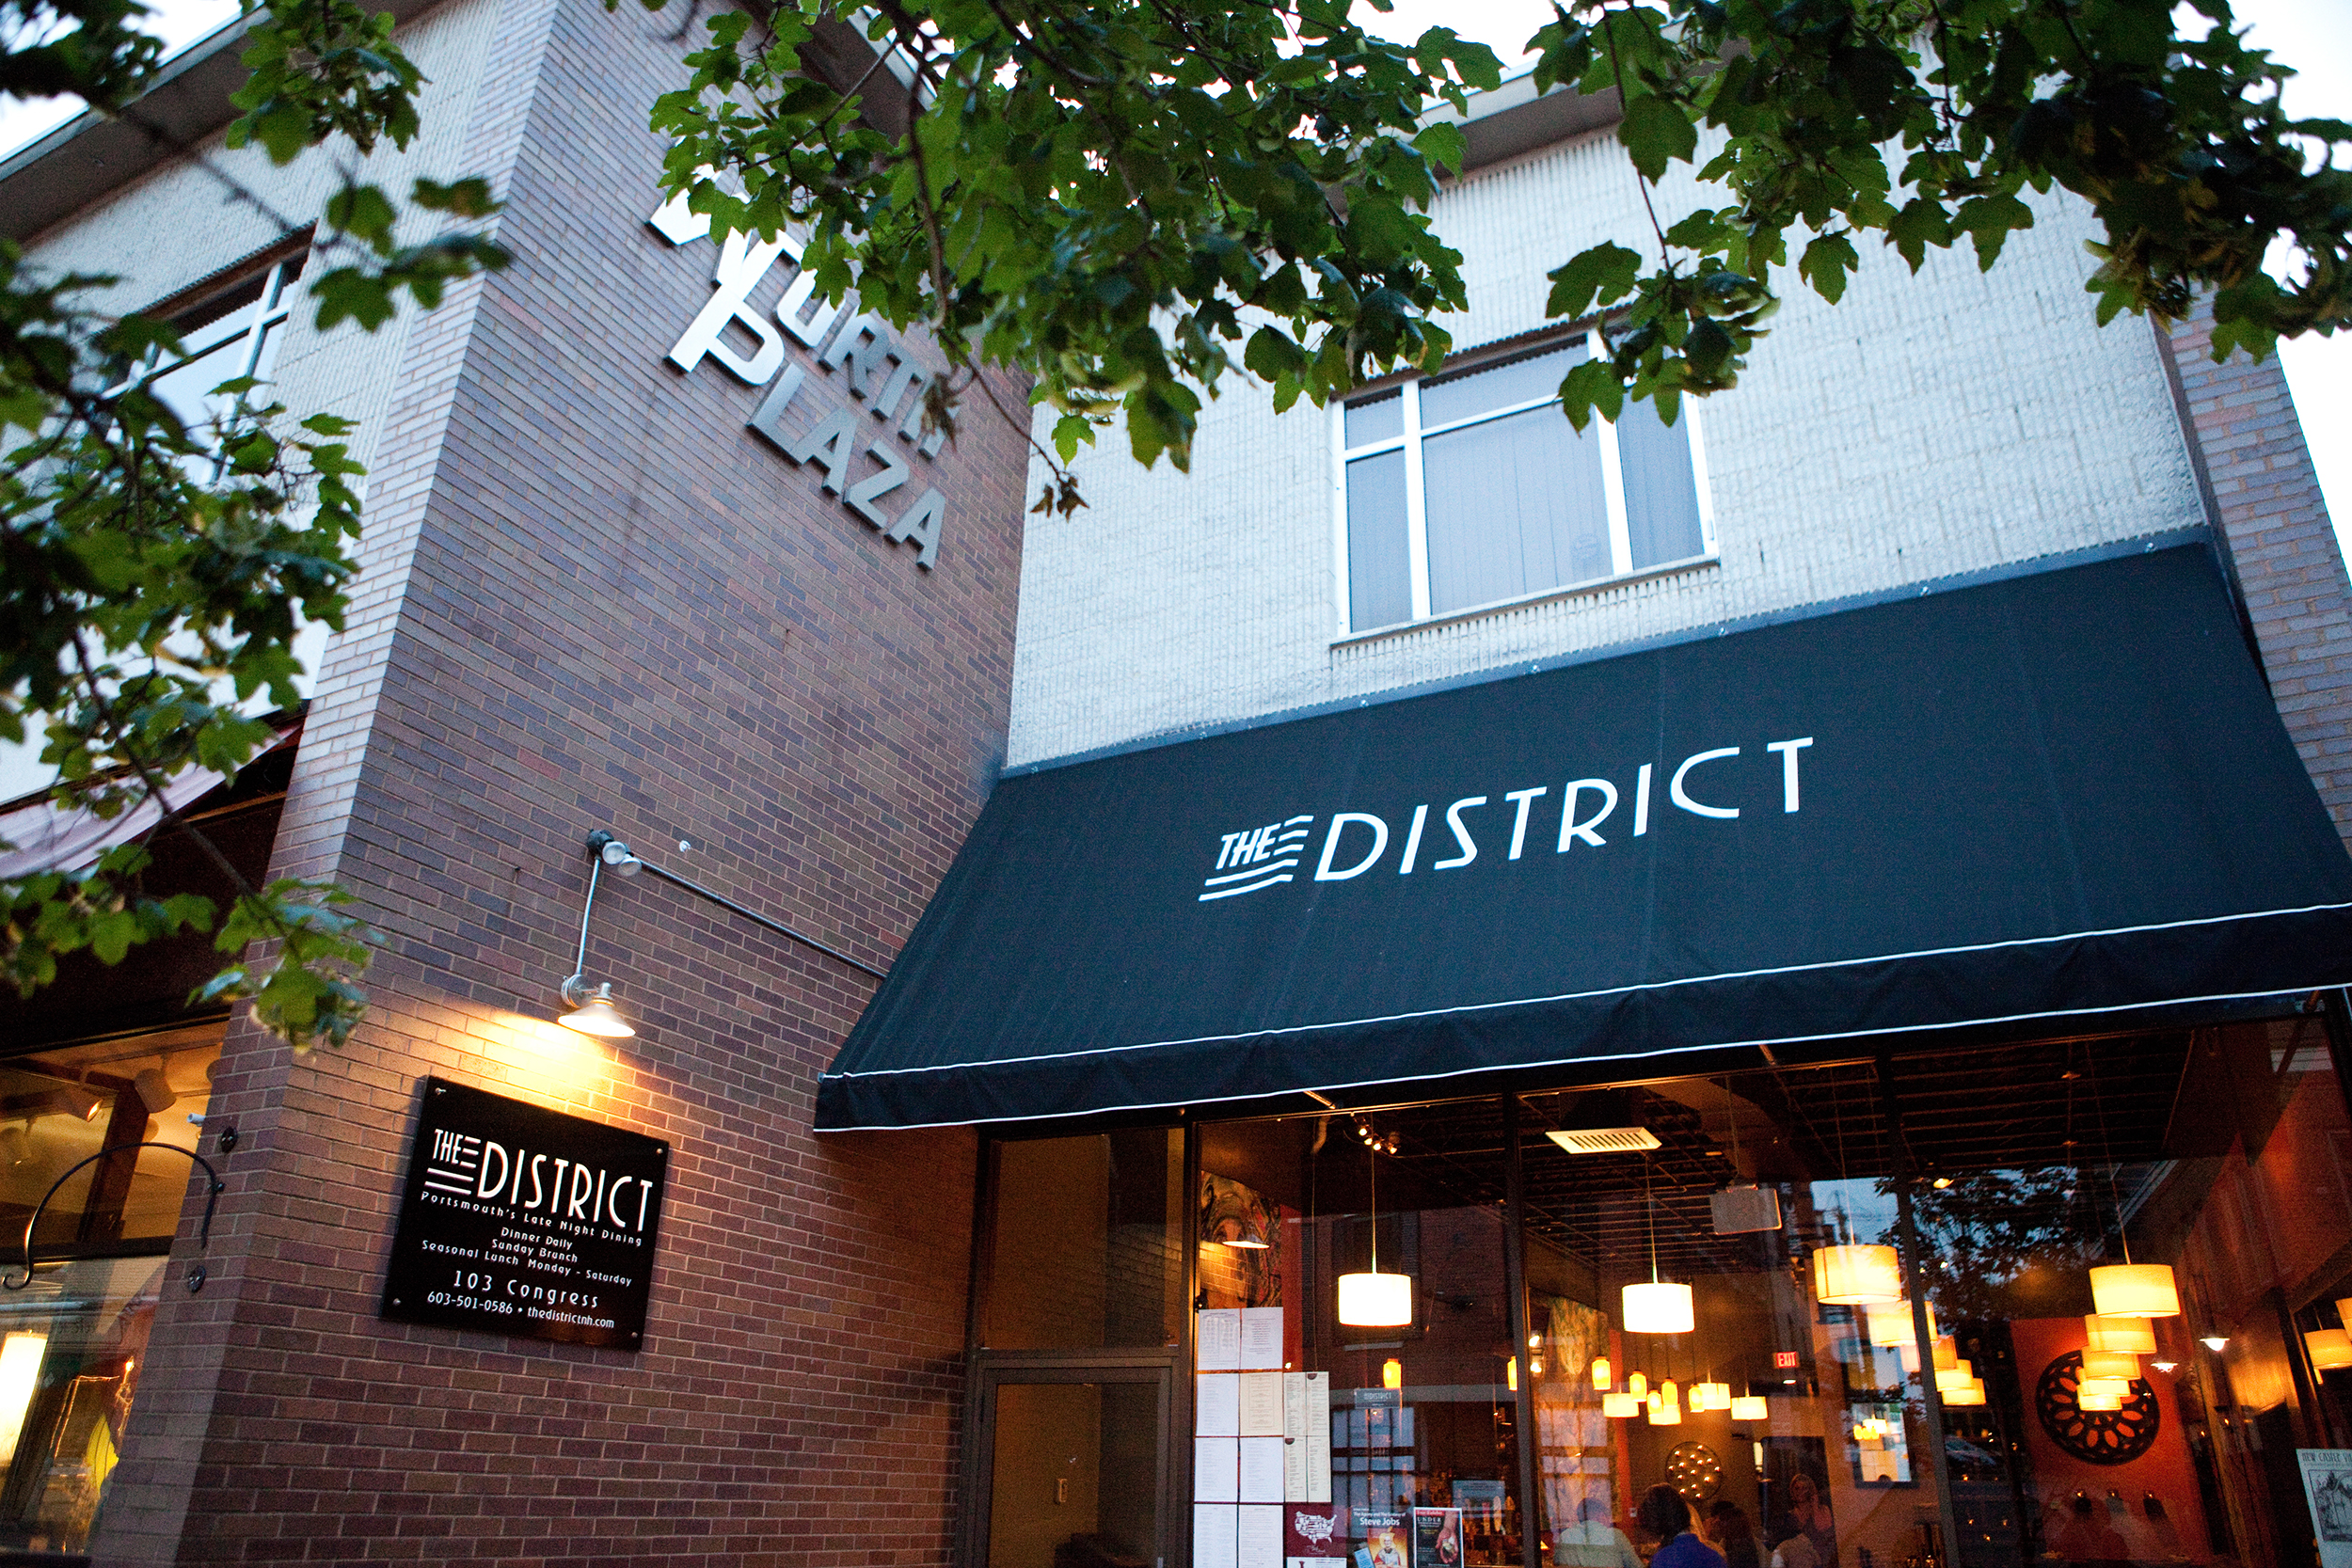 district_restaurant_portsmouth_0065.jpg